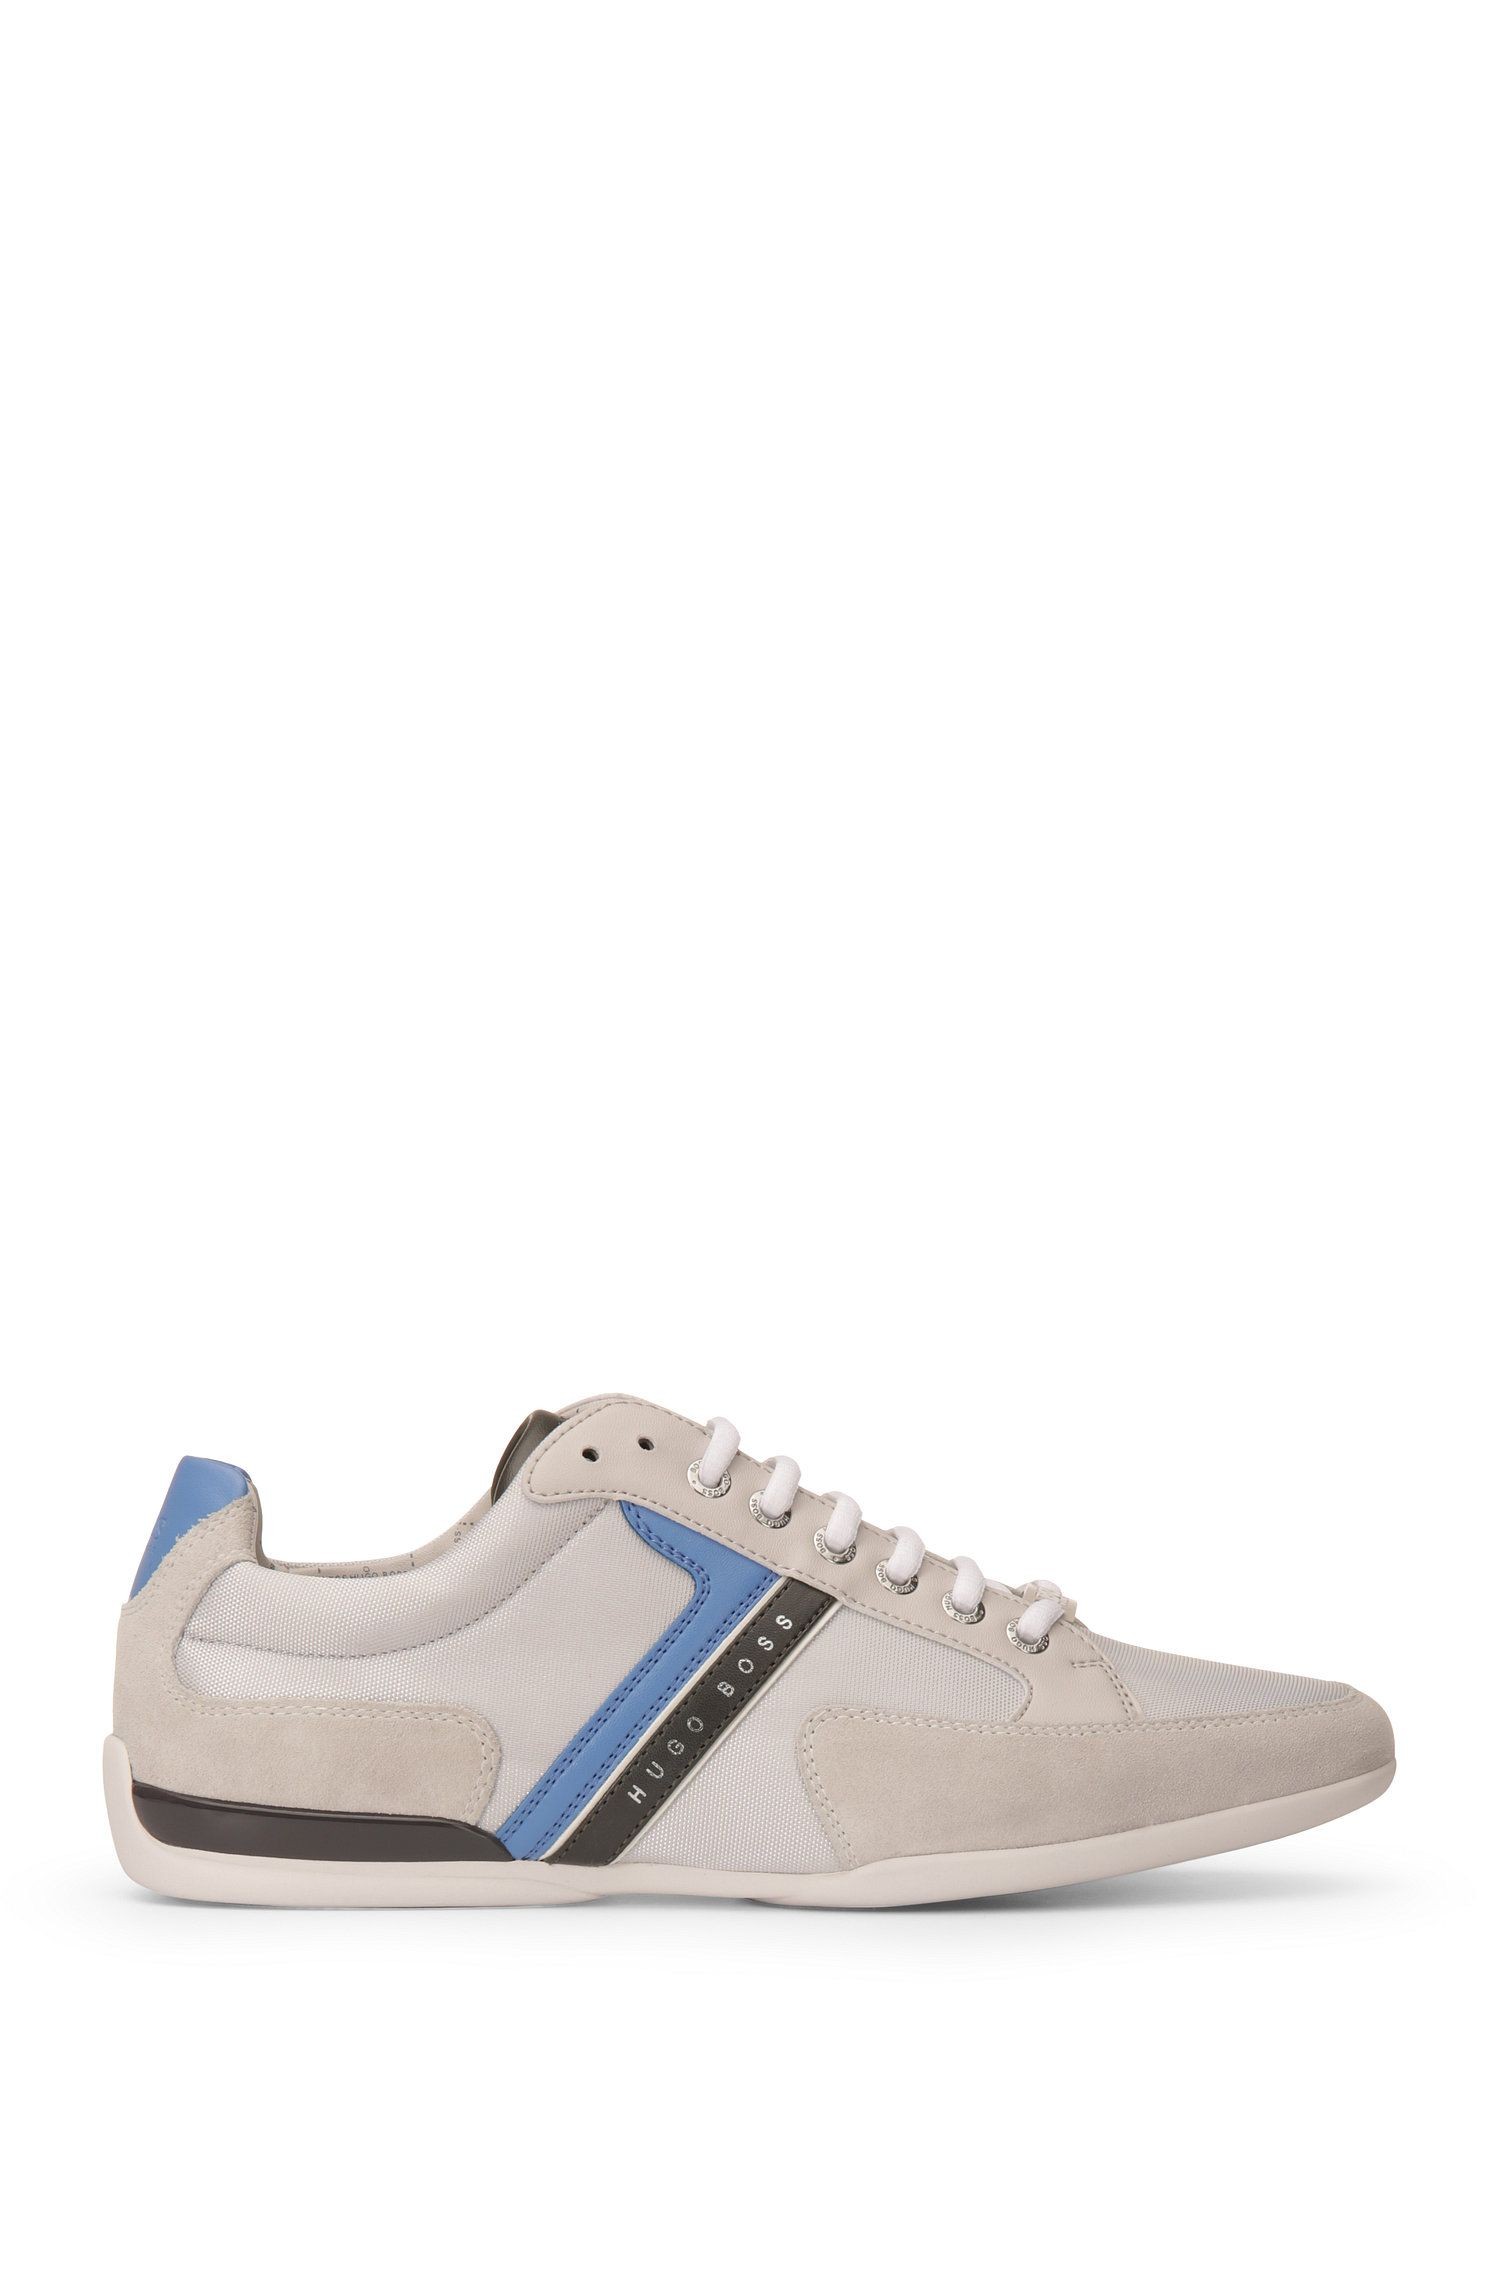 Leather and Suede Sneaker   Spacit